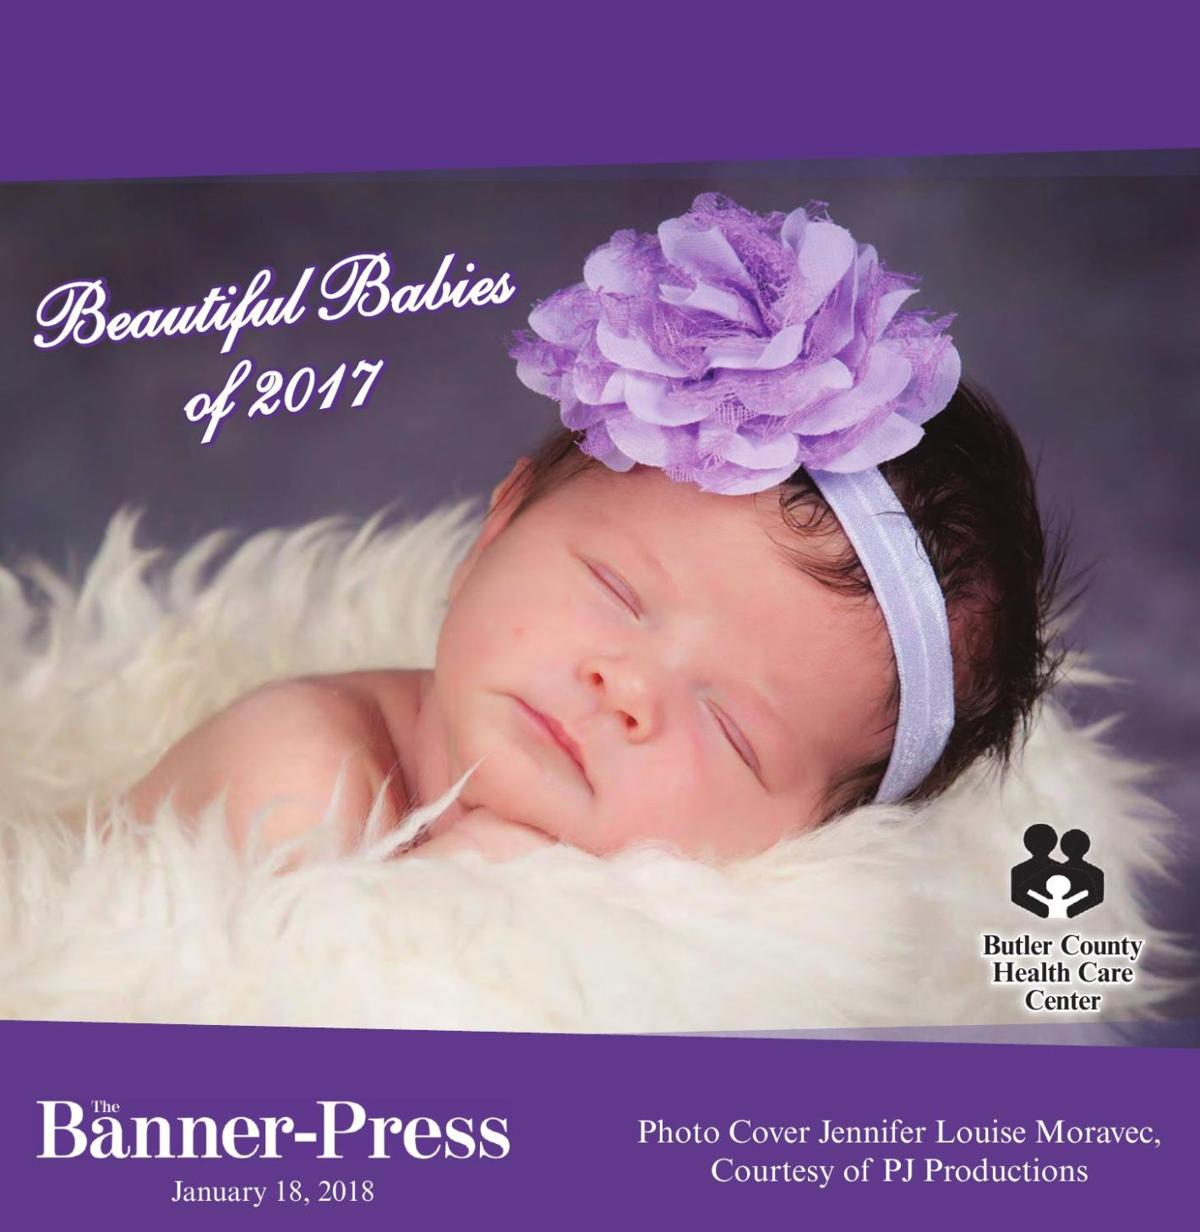 Butler County Health Care Center Beautiful Babies  for 2017